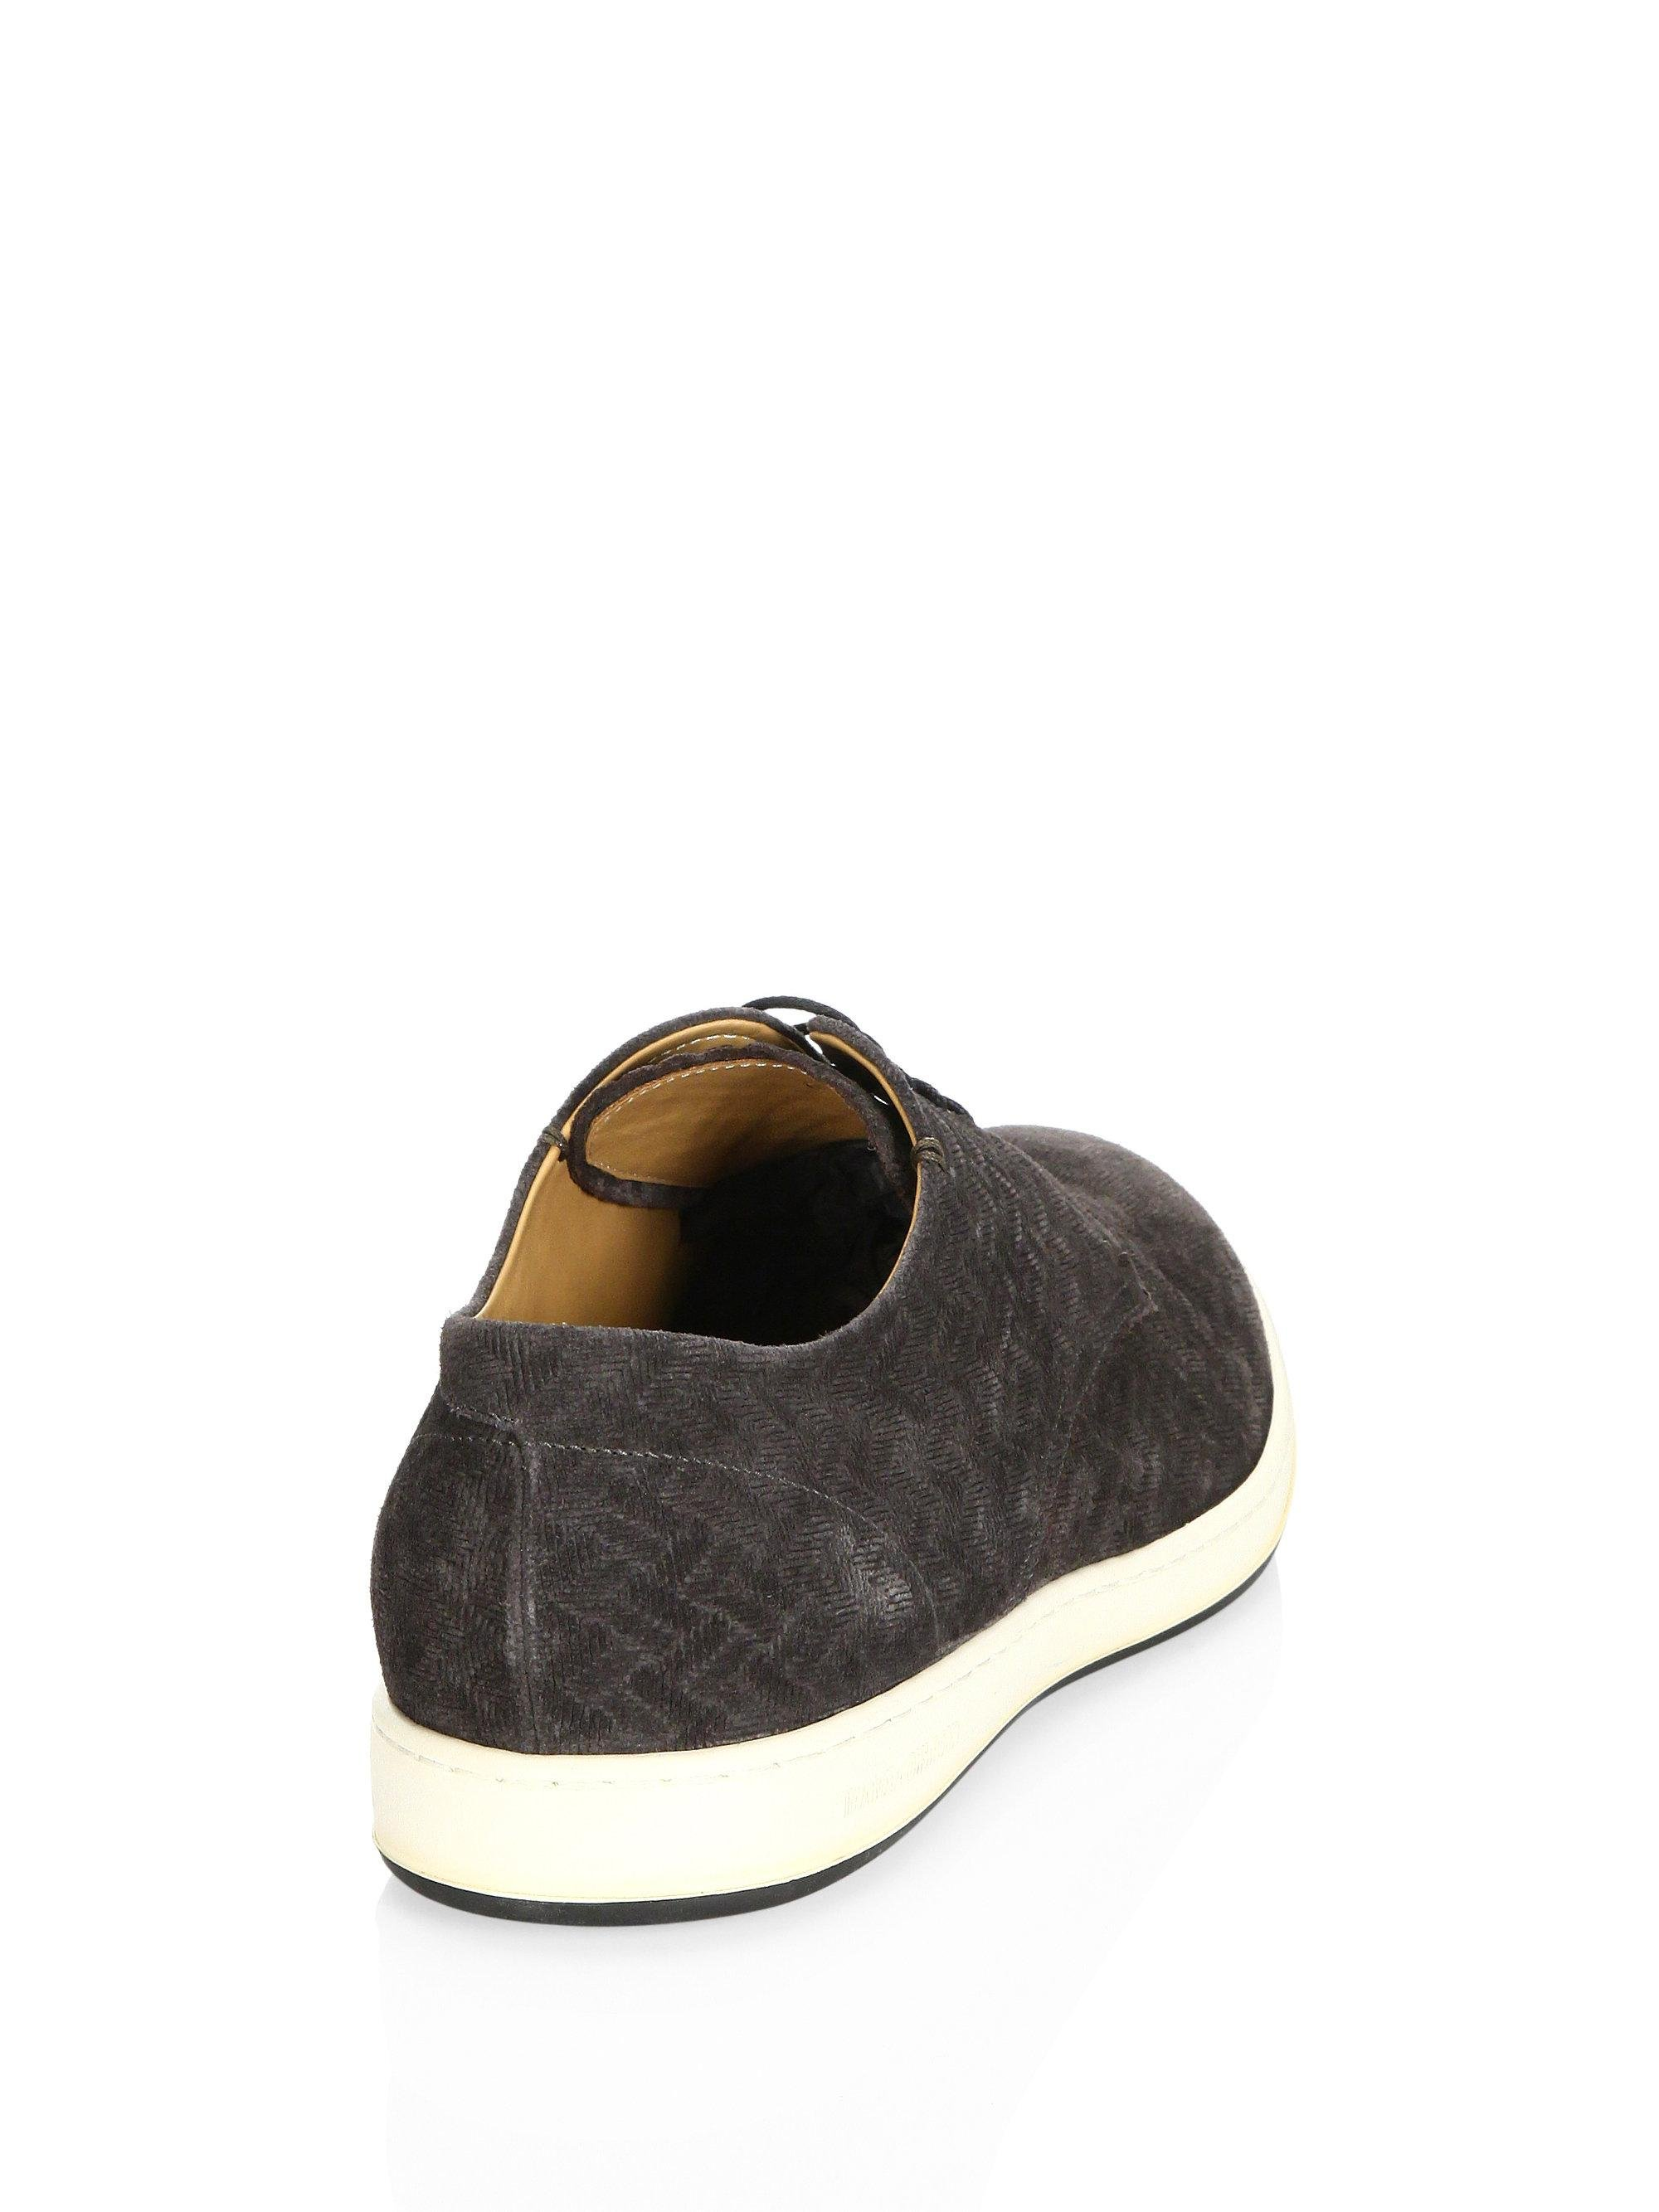 ArmaniClassic Suede Sneakers XPreE